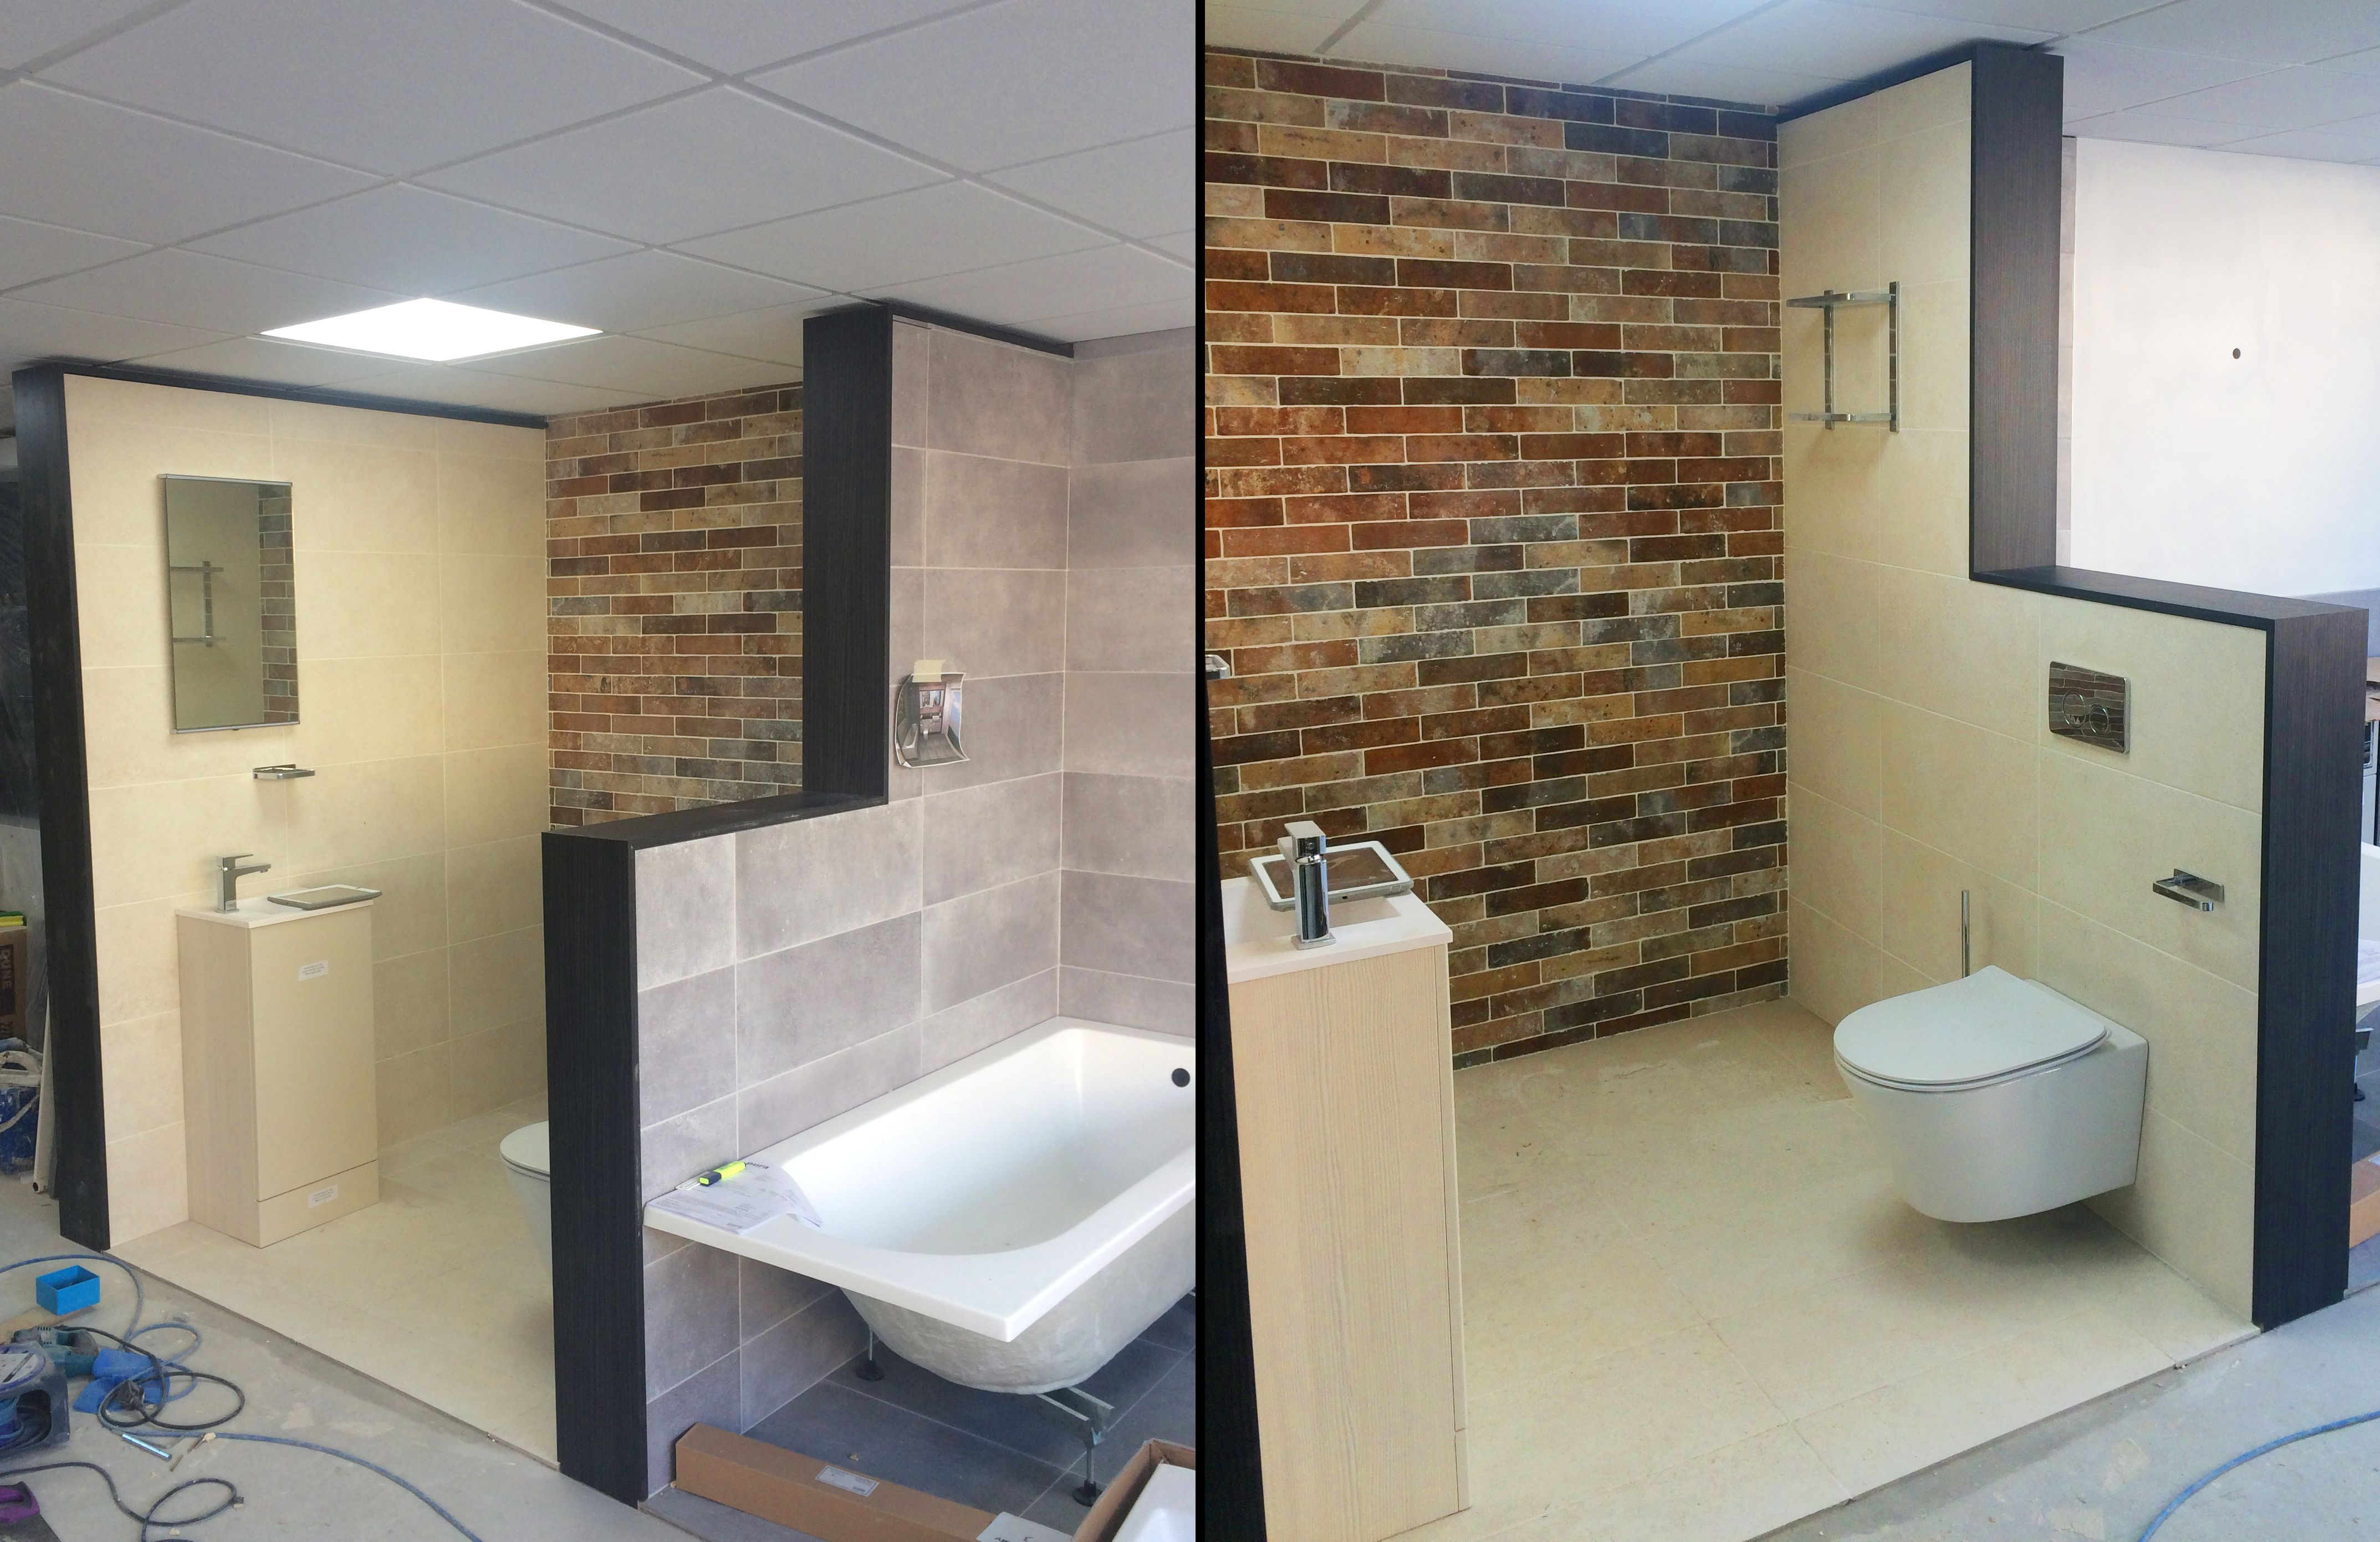 Another view of the progress done by the Pura Bathrooms Group team ...